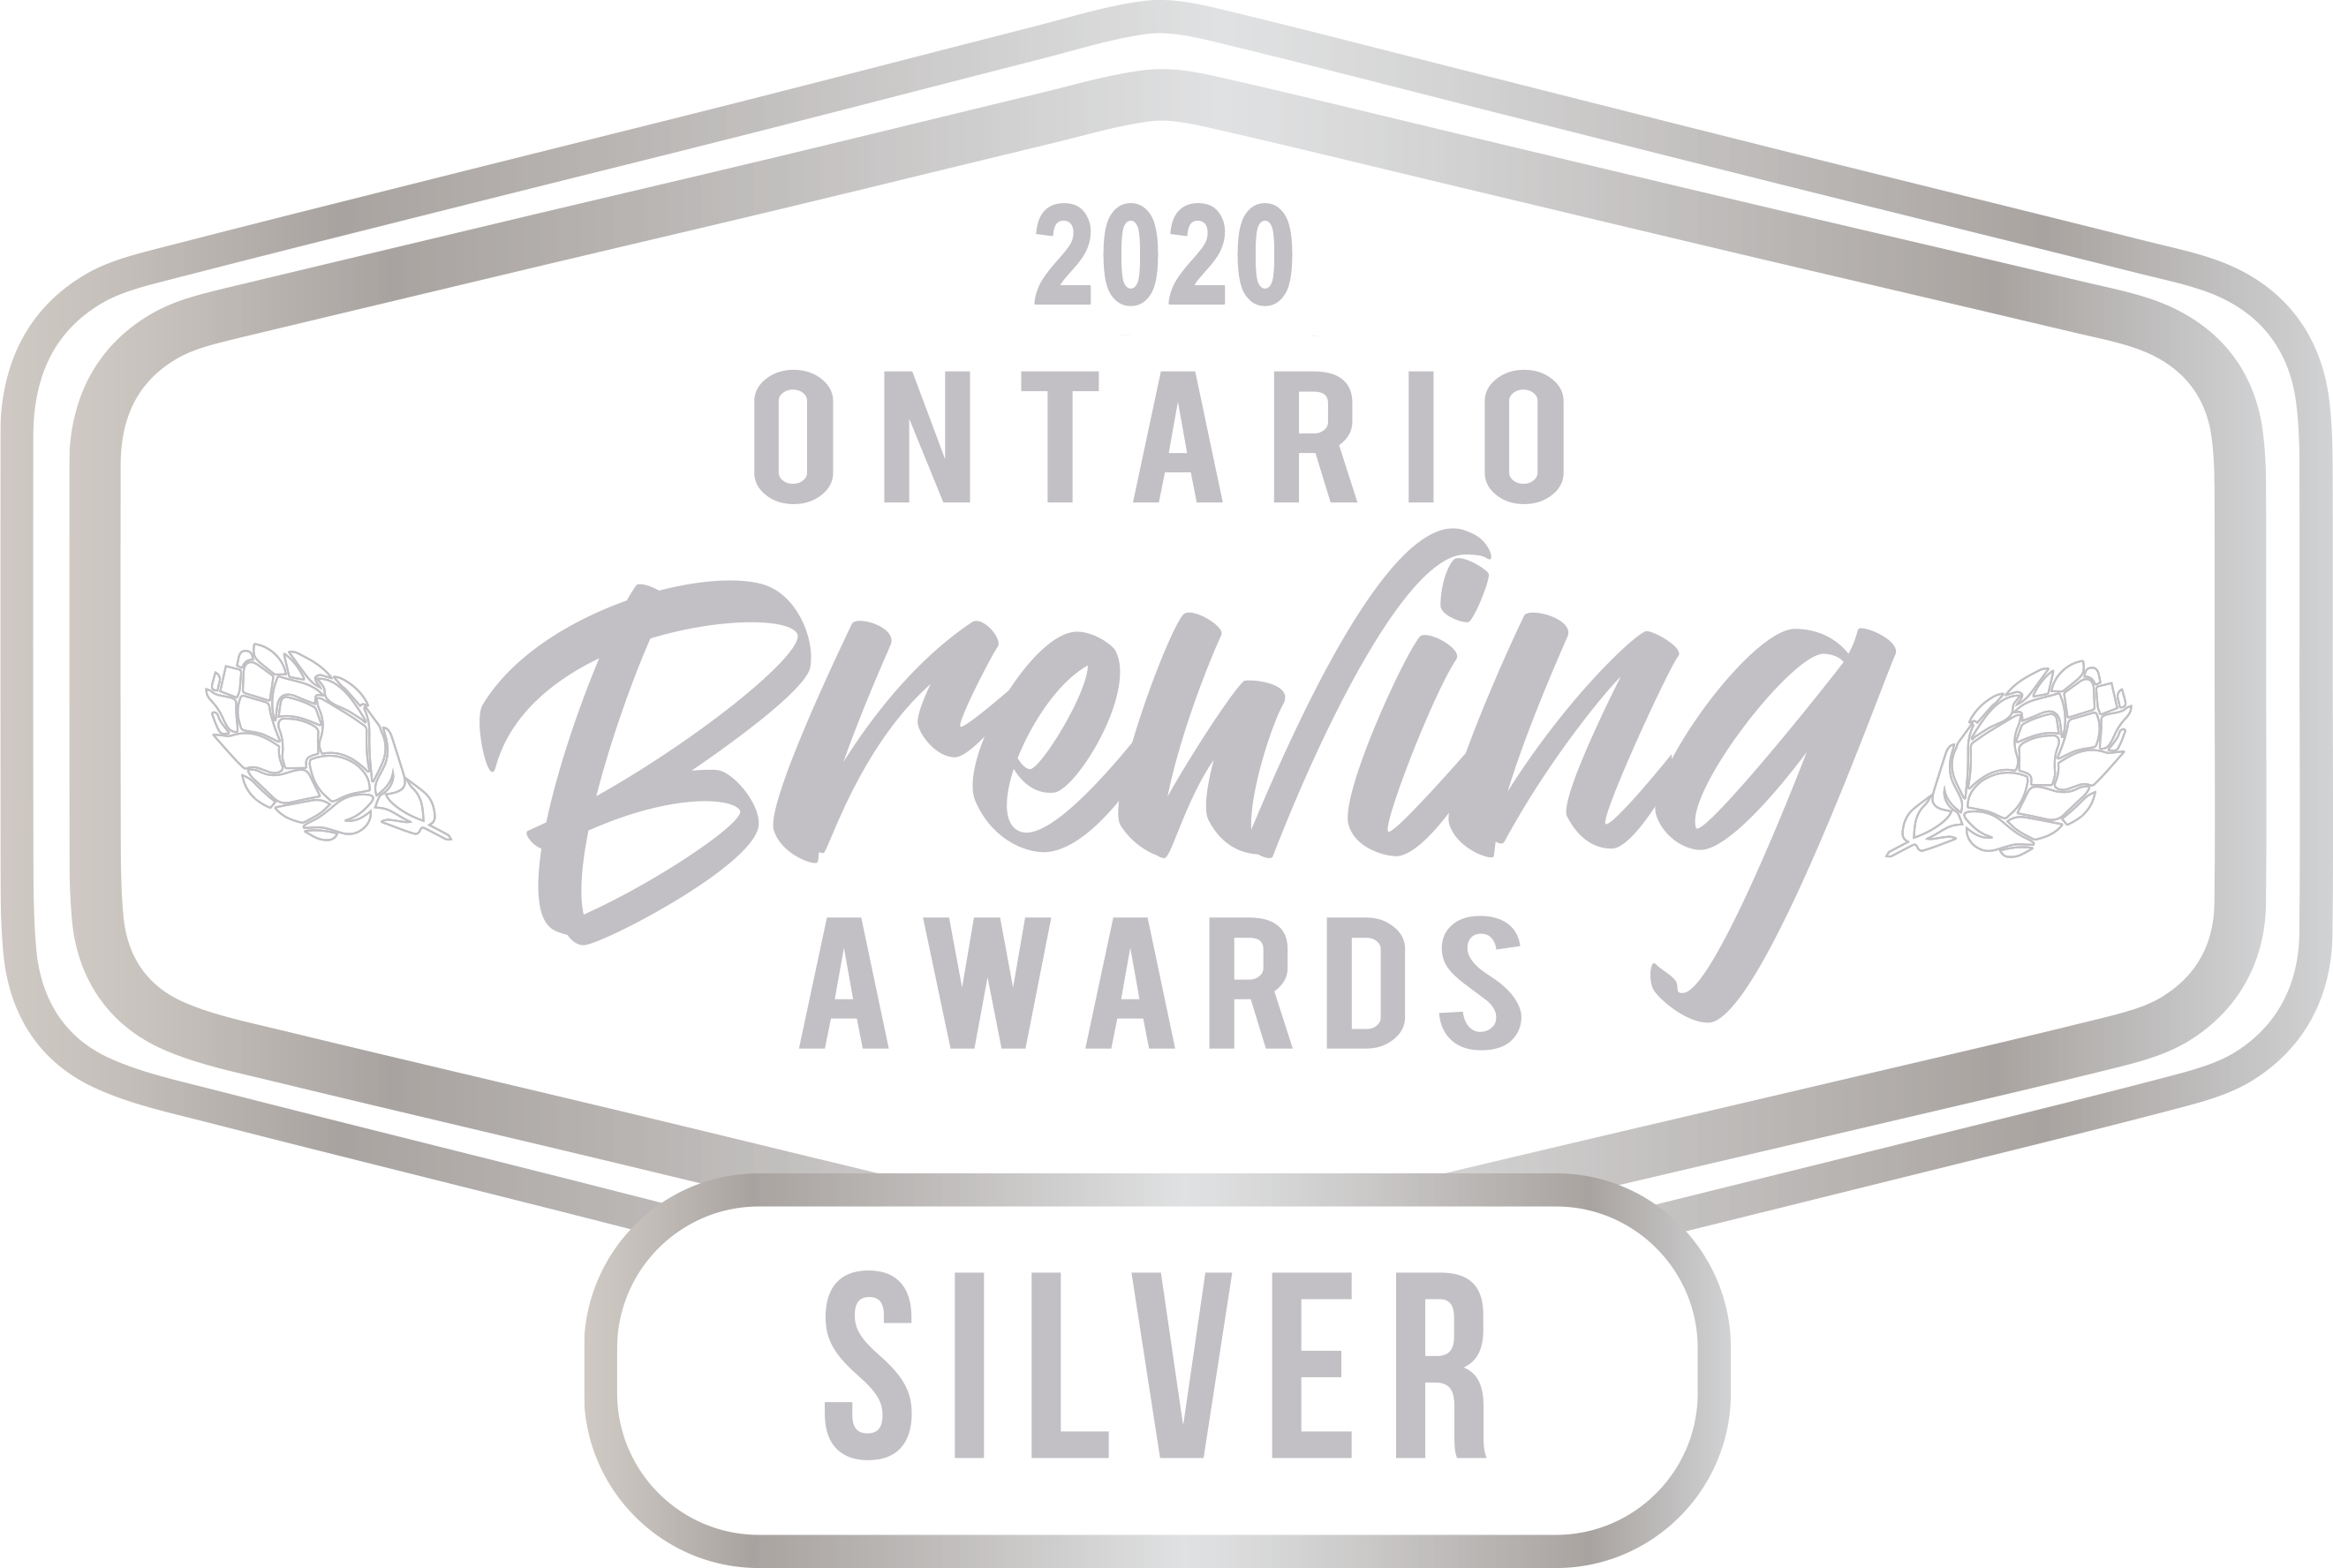 OBA Awards 2020 Silver